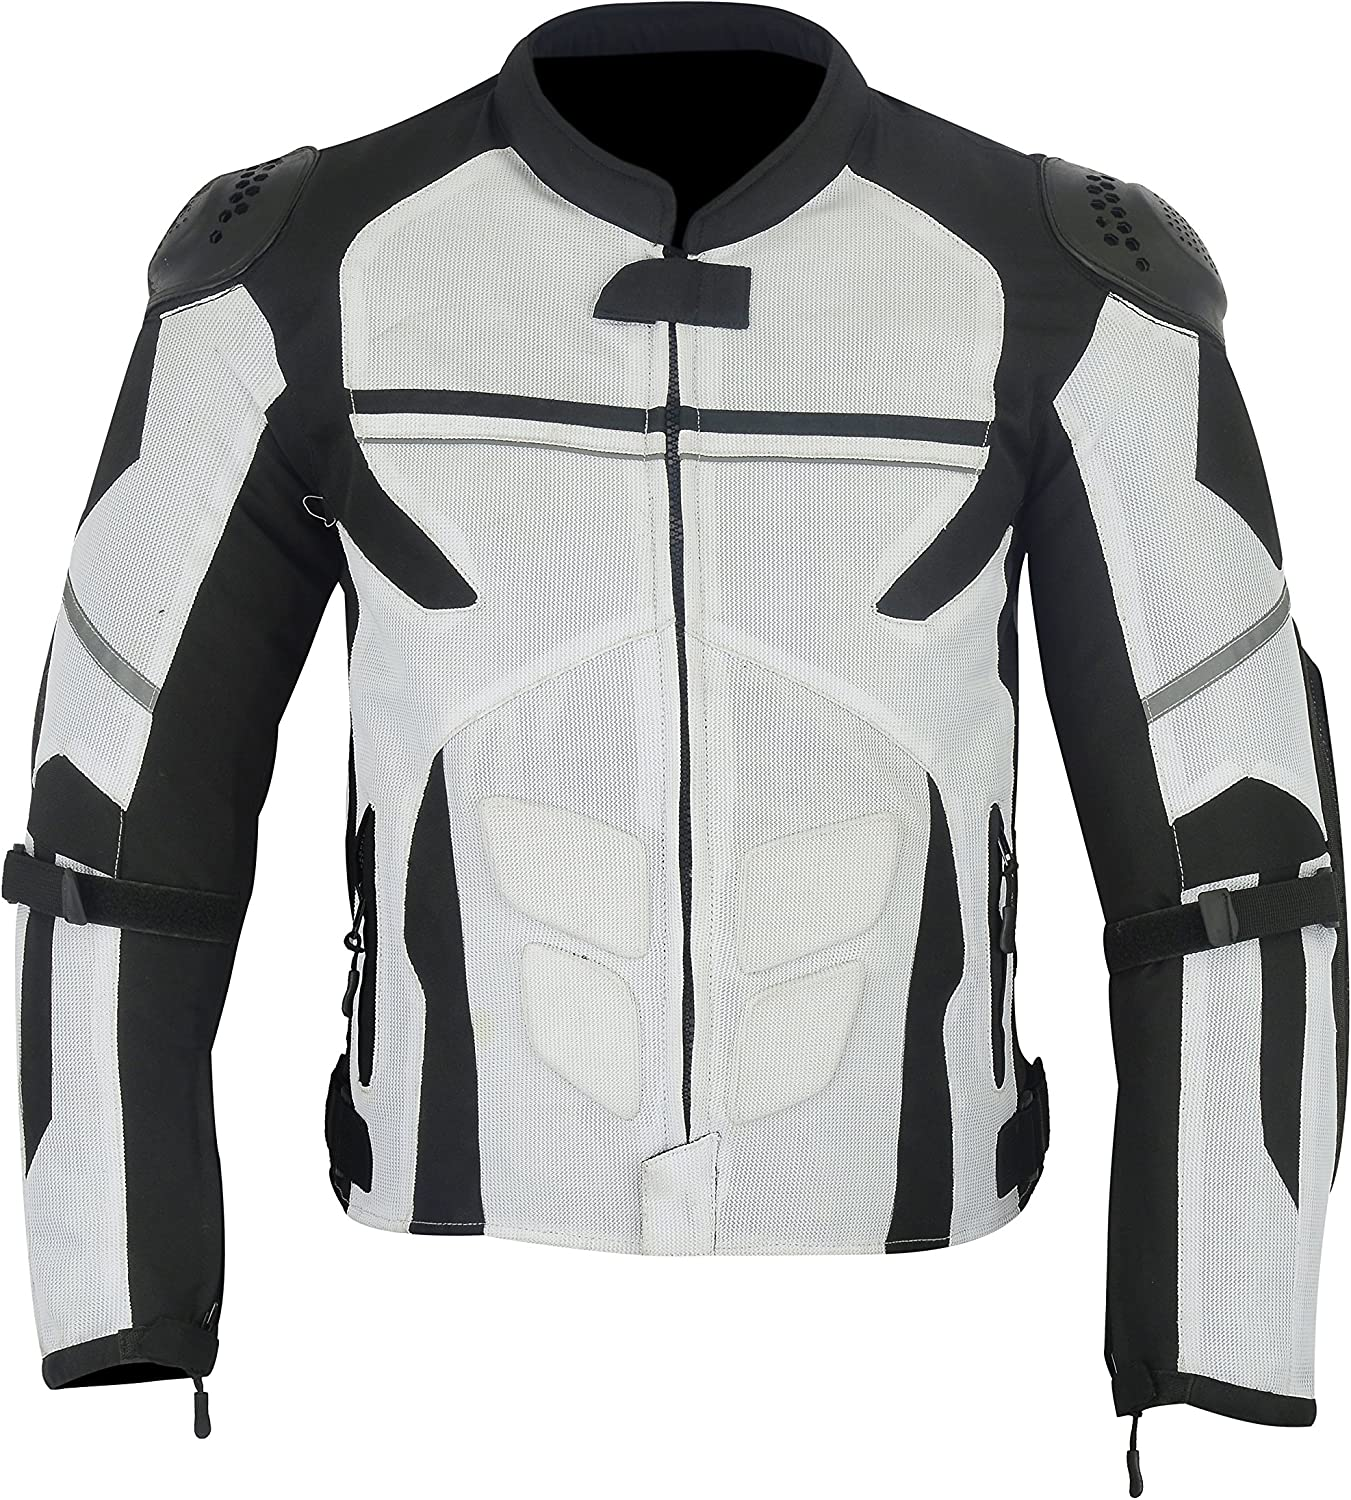 MENS MOTORCYCLE ARMORED HIGH Product PROTECTION ARMOR MESH WITH EXTERNAL 2021 autumn and winter new